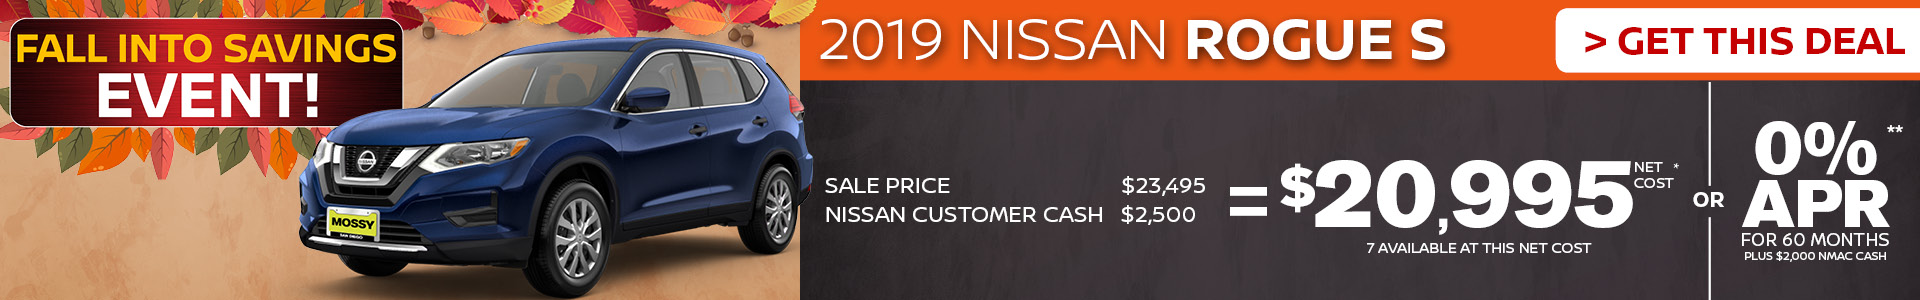 Mossy Nissan - Nissan Rogue $20,995 Purchase